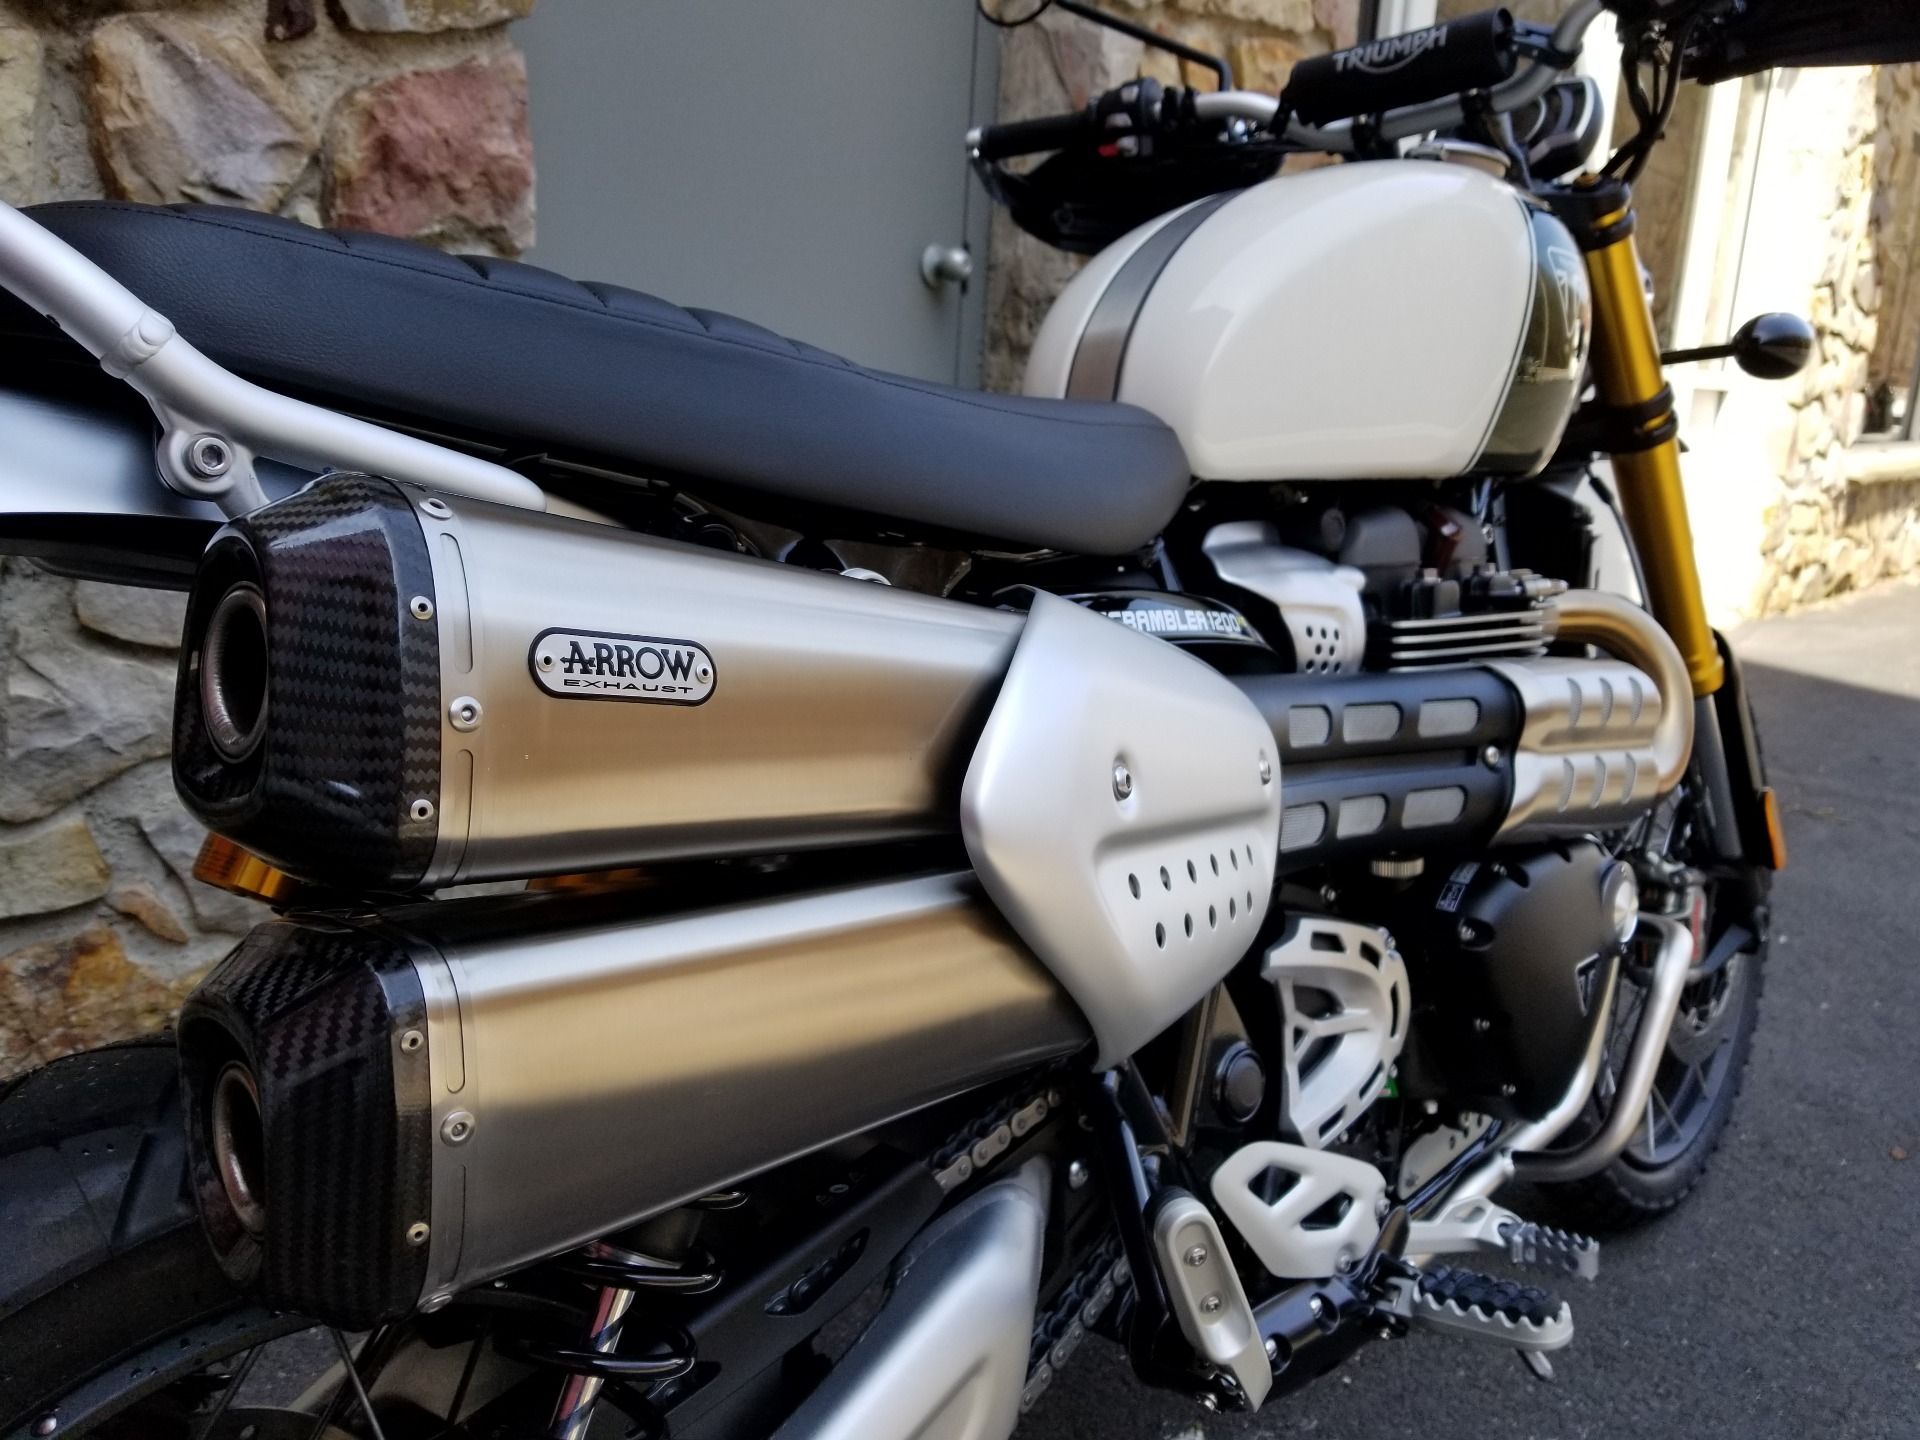 2019 Triumph Scrambler 1200 XE in Port Clinton, Pennsylvania